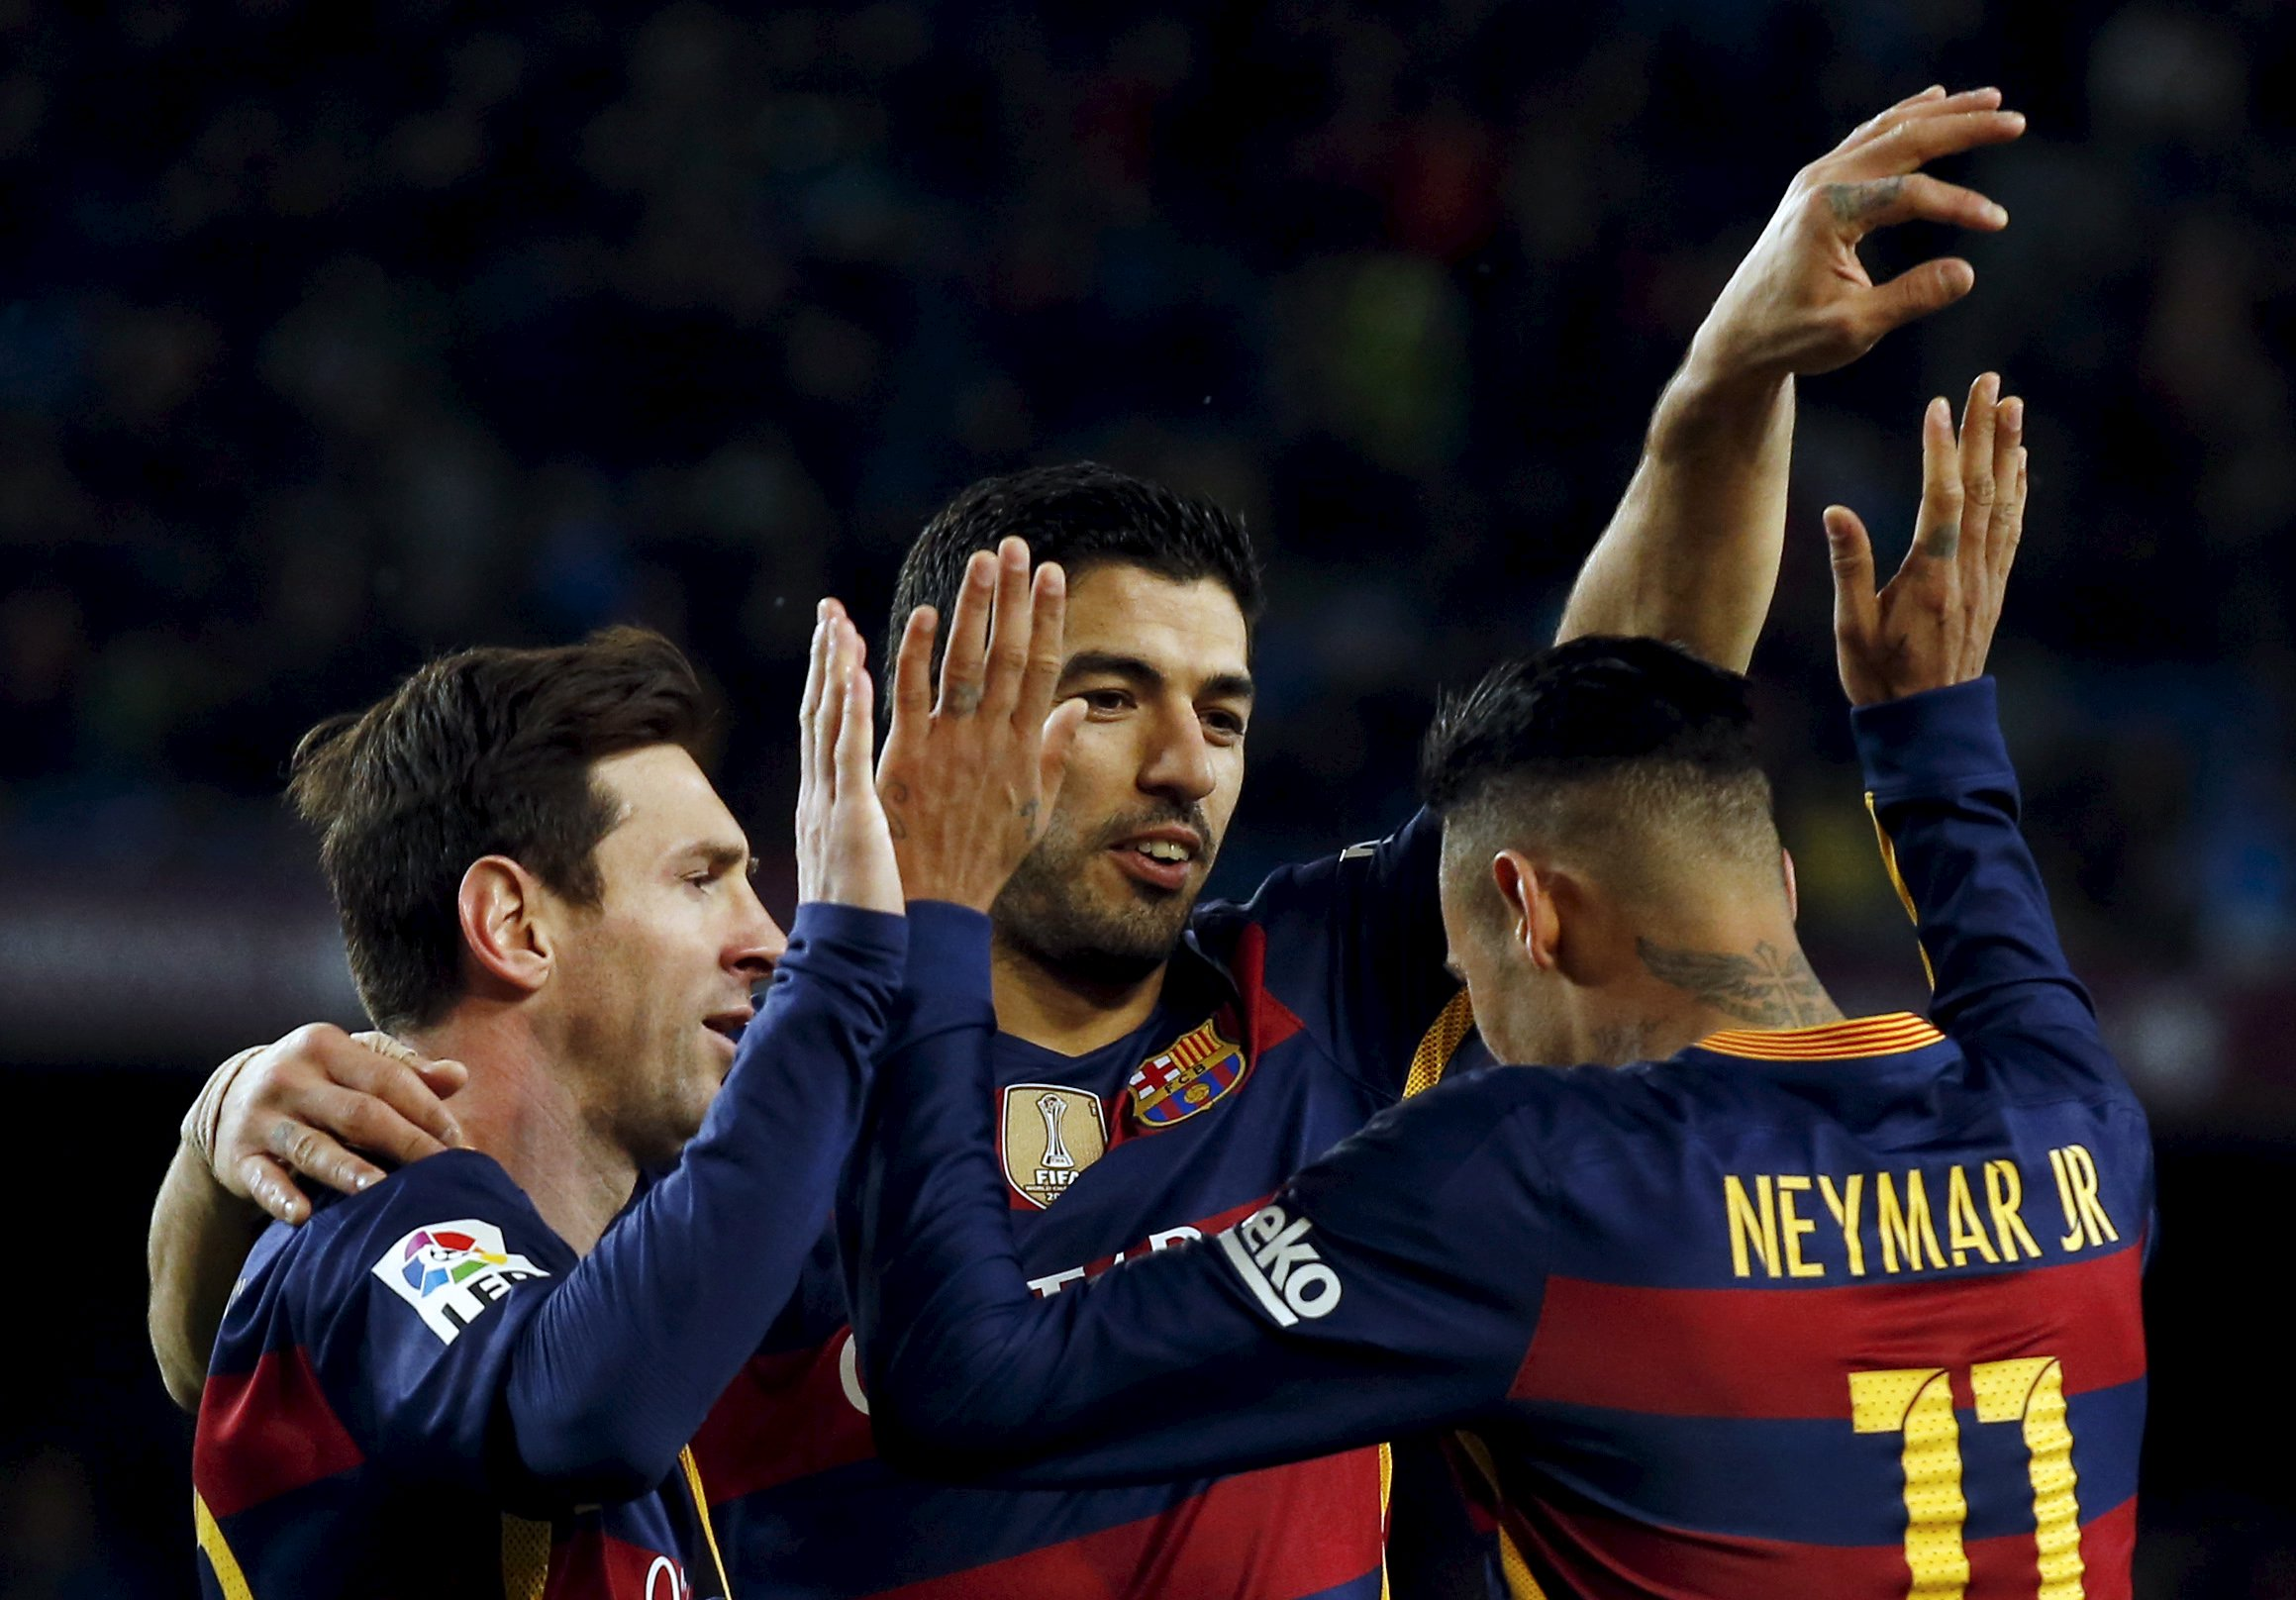 Barcelona's three South American superstars Lionel Messi, Luis Suarez and Neymar Jr (from l to r) celebrate a goal against Celta Vigo. The Catalan giants romped to a 6-1 victory. Image supplied by Action Images /Albert Gea.